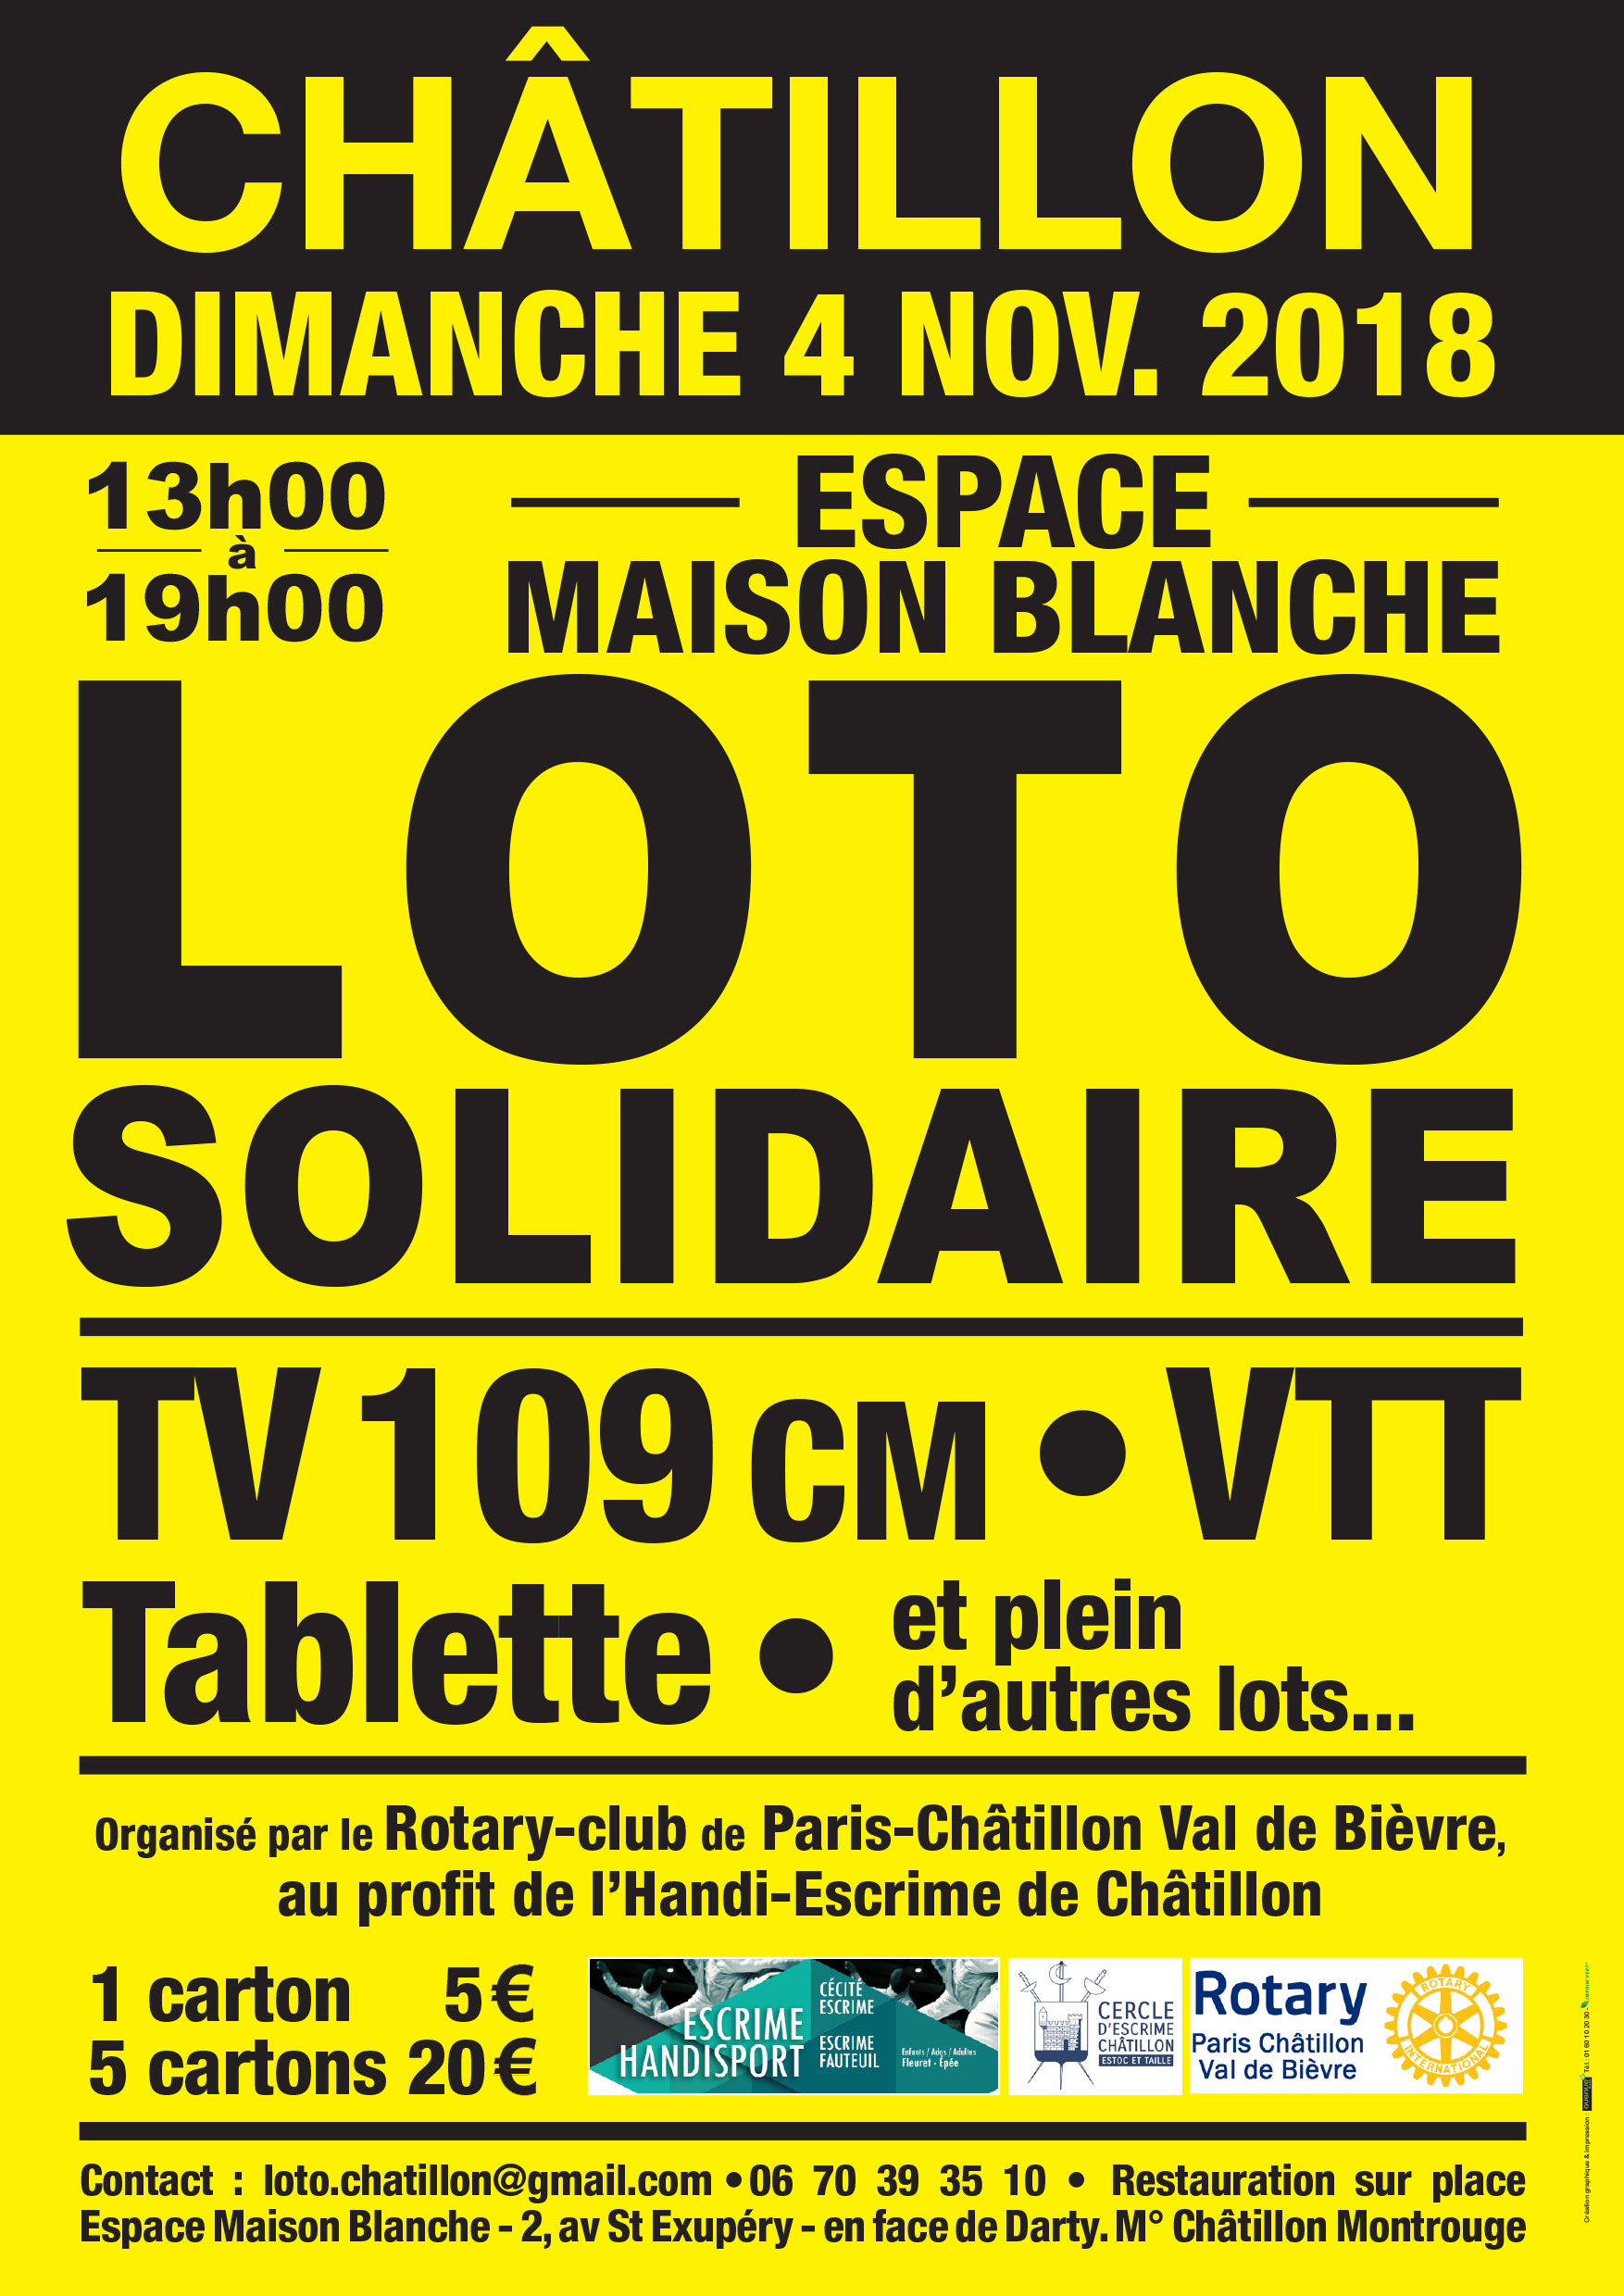 201810024-afiches-loto-2018-rotary-chatillon-A3---3-10.jpg